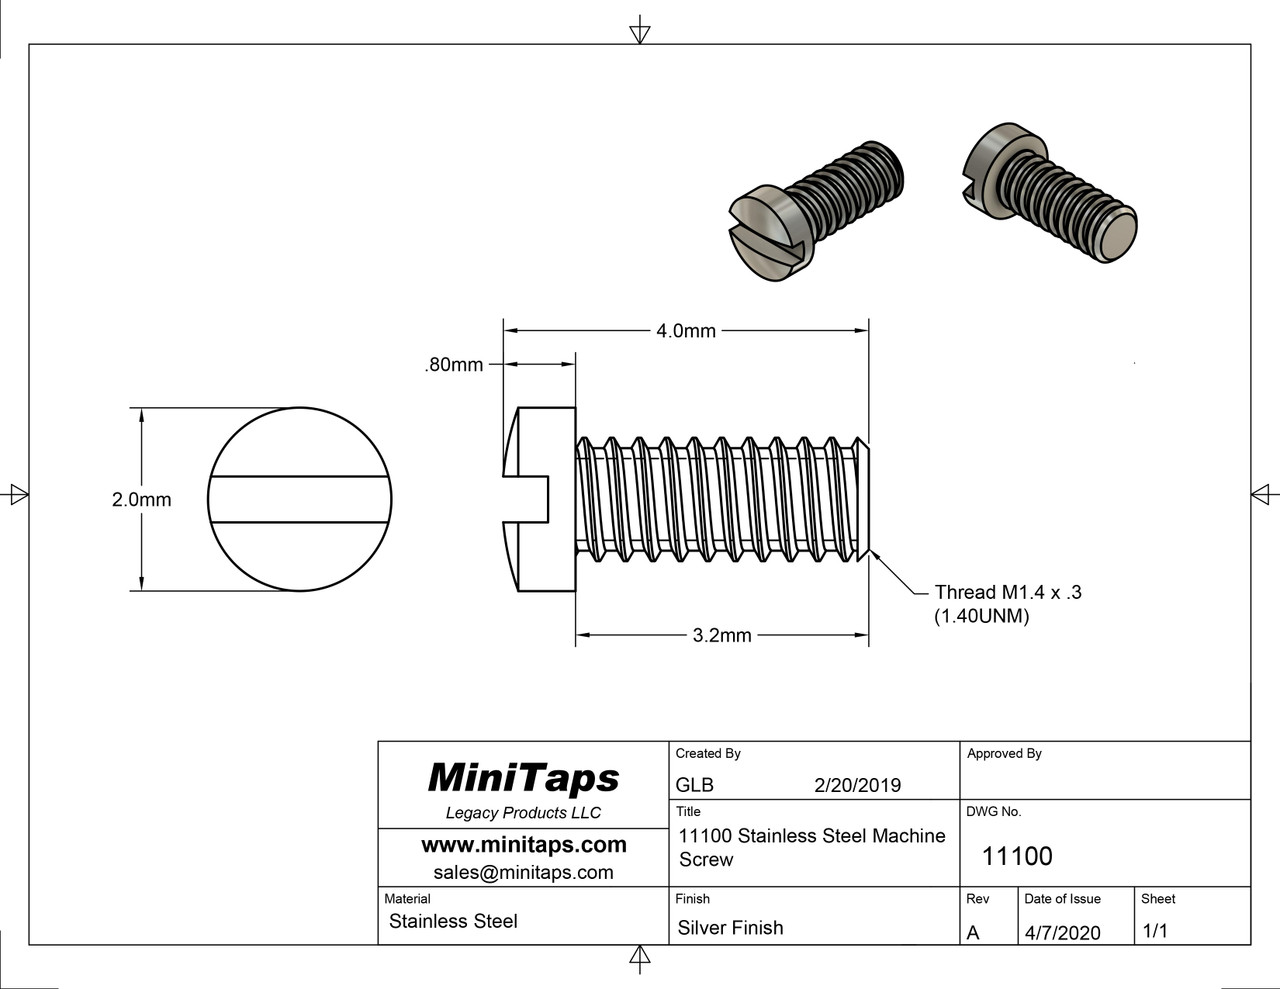 """Machine Screw Special, Small Head     Thread M1.4 (1.40UNM,) Pitch .30mm, Overall Length (OAL) 4.0mm, Threaded Length (Shank) 3.2mm / 1/8"""" max, Head 2.0mm     Stainless Steel, Finish Color Silver  Made on precision screw machines.     Price is for 100 count package with bulk pricing available.     Please contact sales@minitaps.com for bulk pricing pricing or any additional questions or information."""